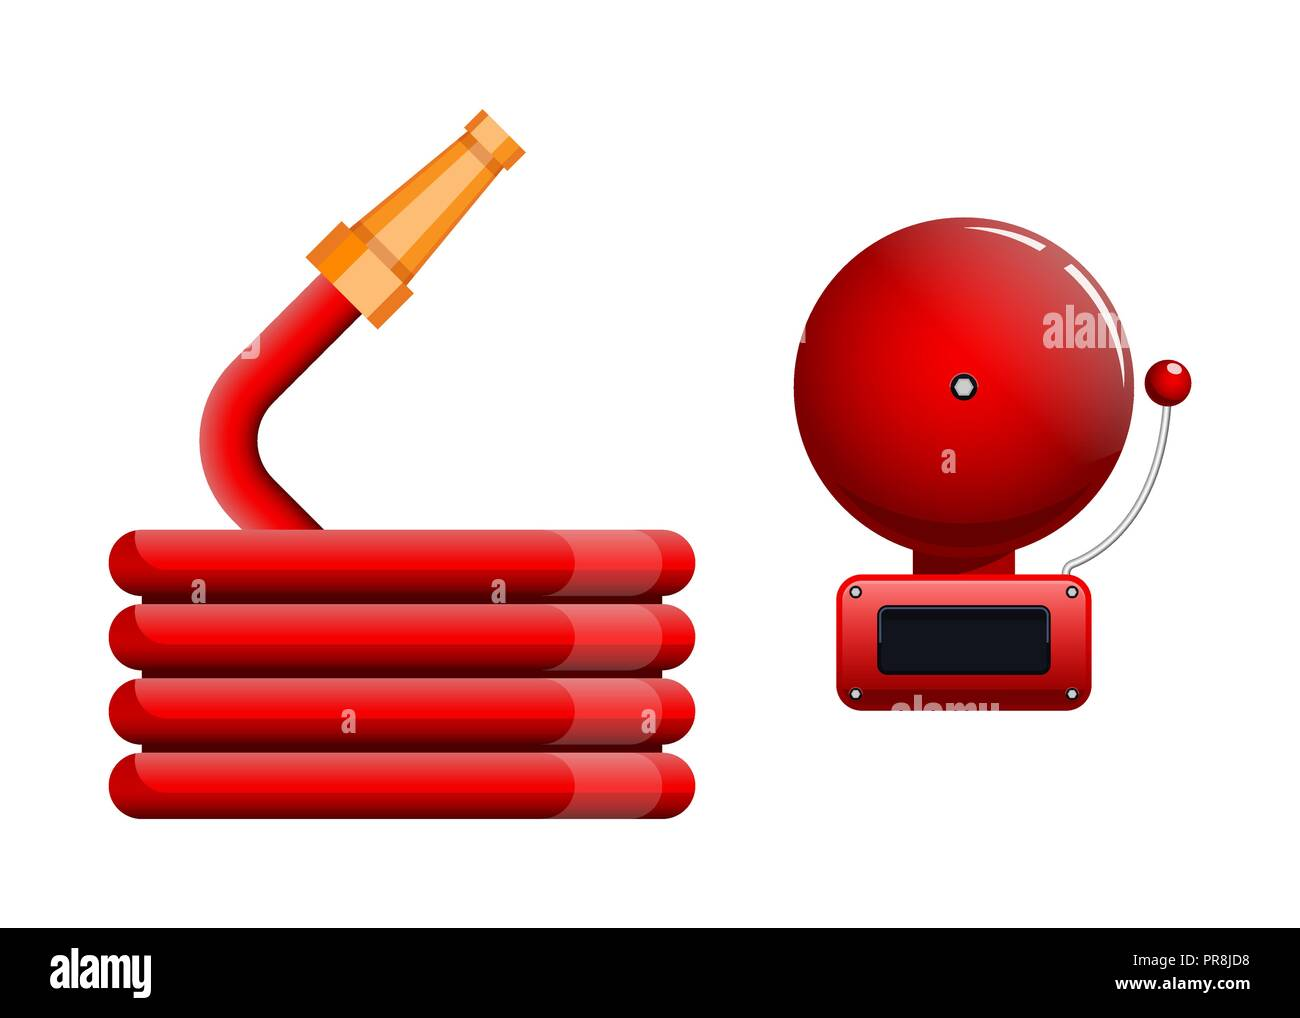 Emergency icon, red fire alarm system and fire hose - Stock Image